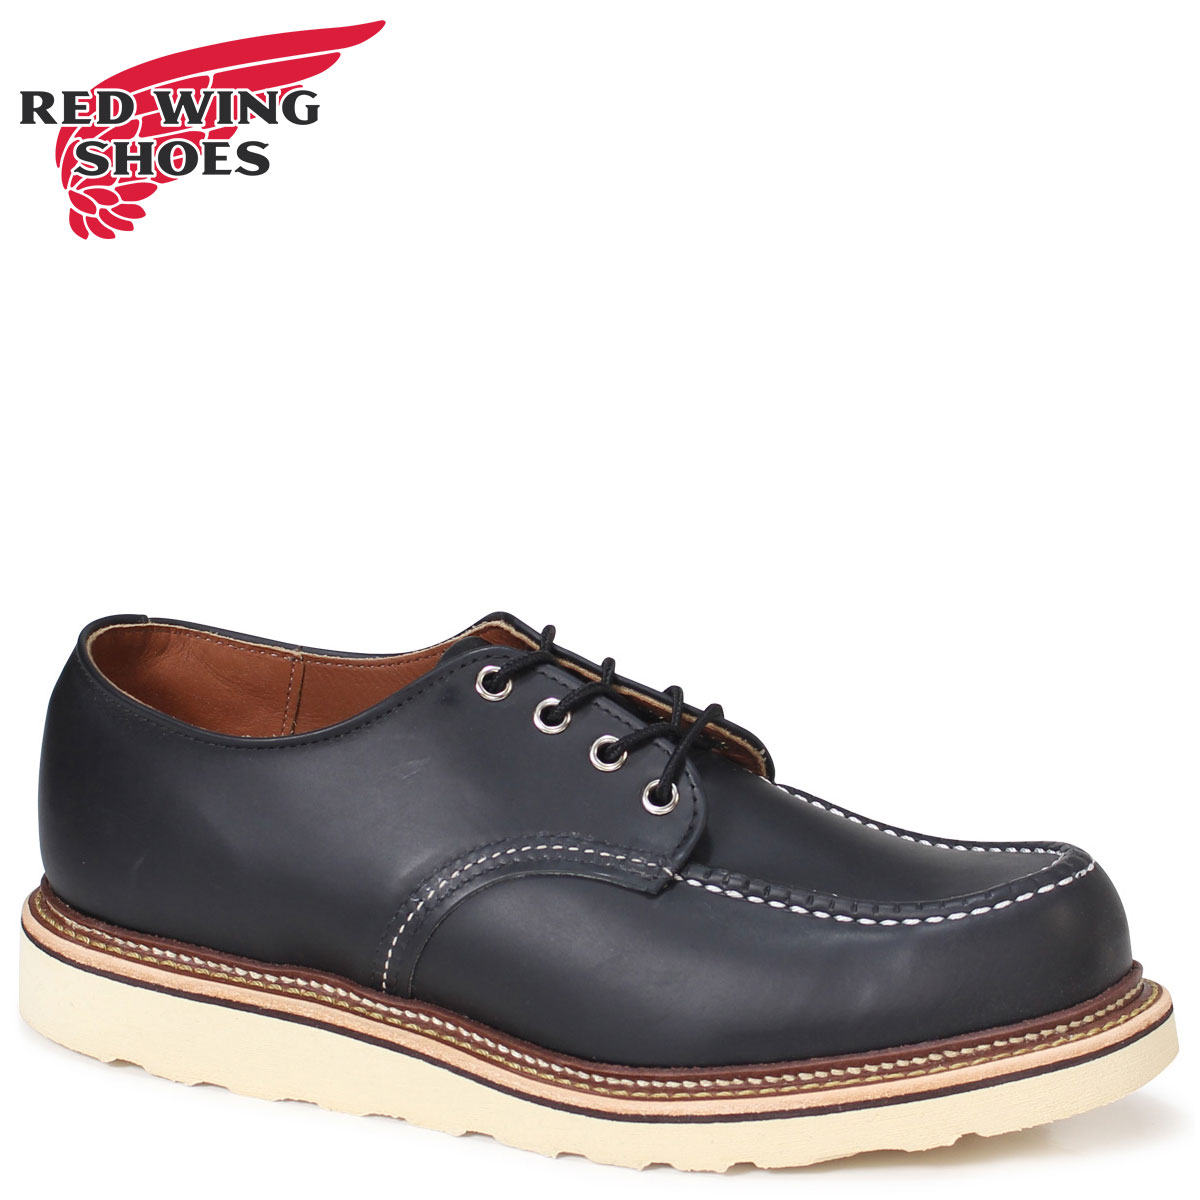 Red Wing Redwing Oxford Shoes Classic Oxford Classic D Wise 8106 Red Wing Irish Setter Mens